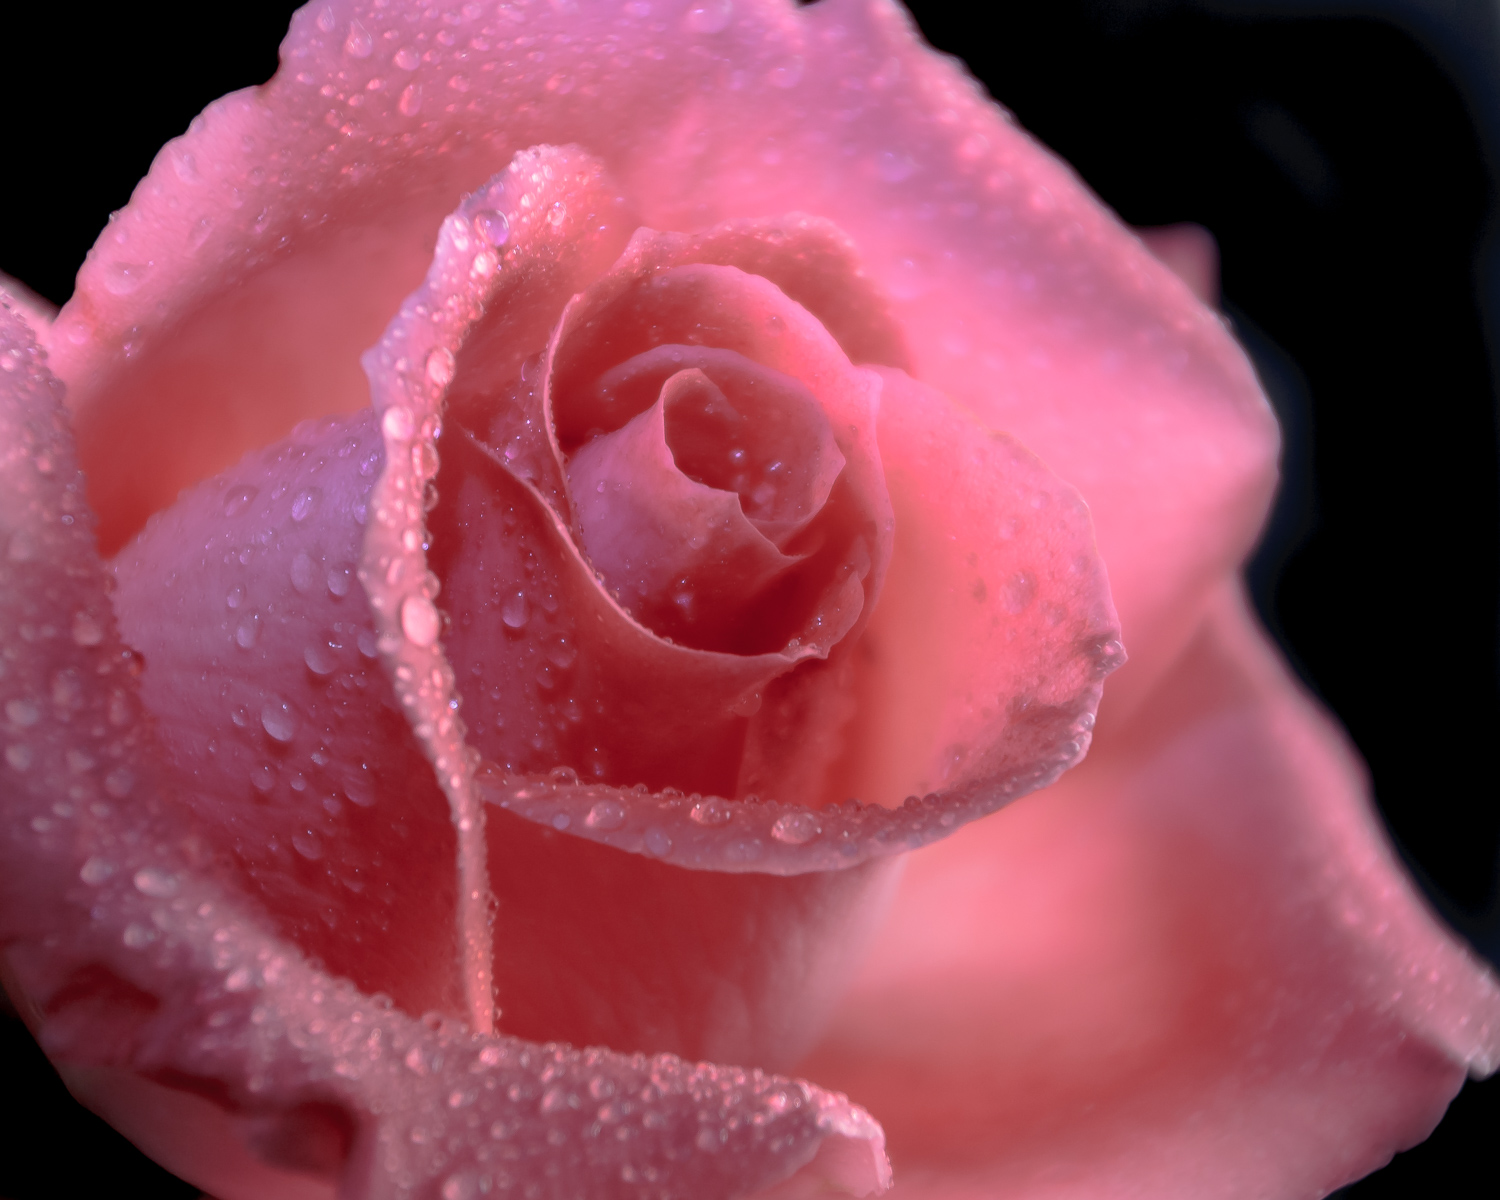 Image: A little spritz with a sprayer makes this rose look fresh and adds interest.